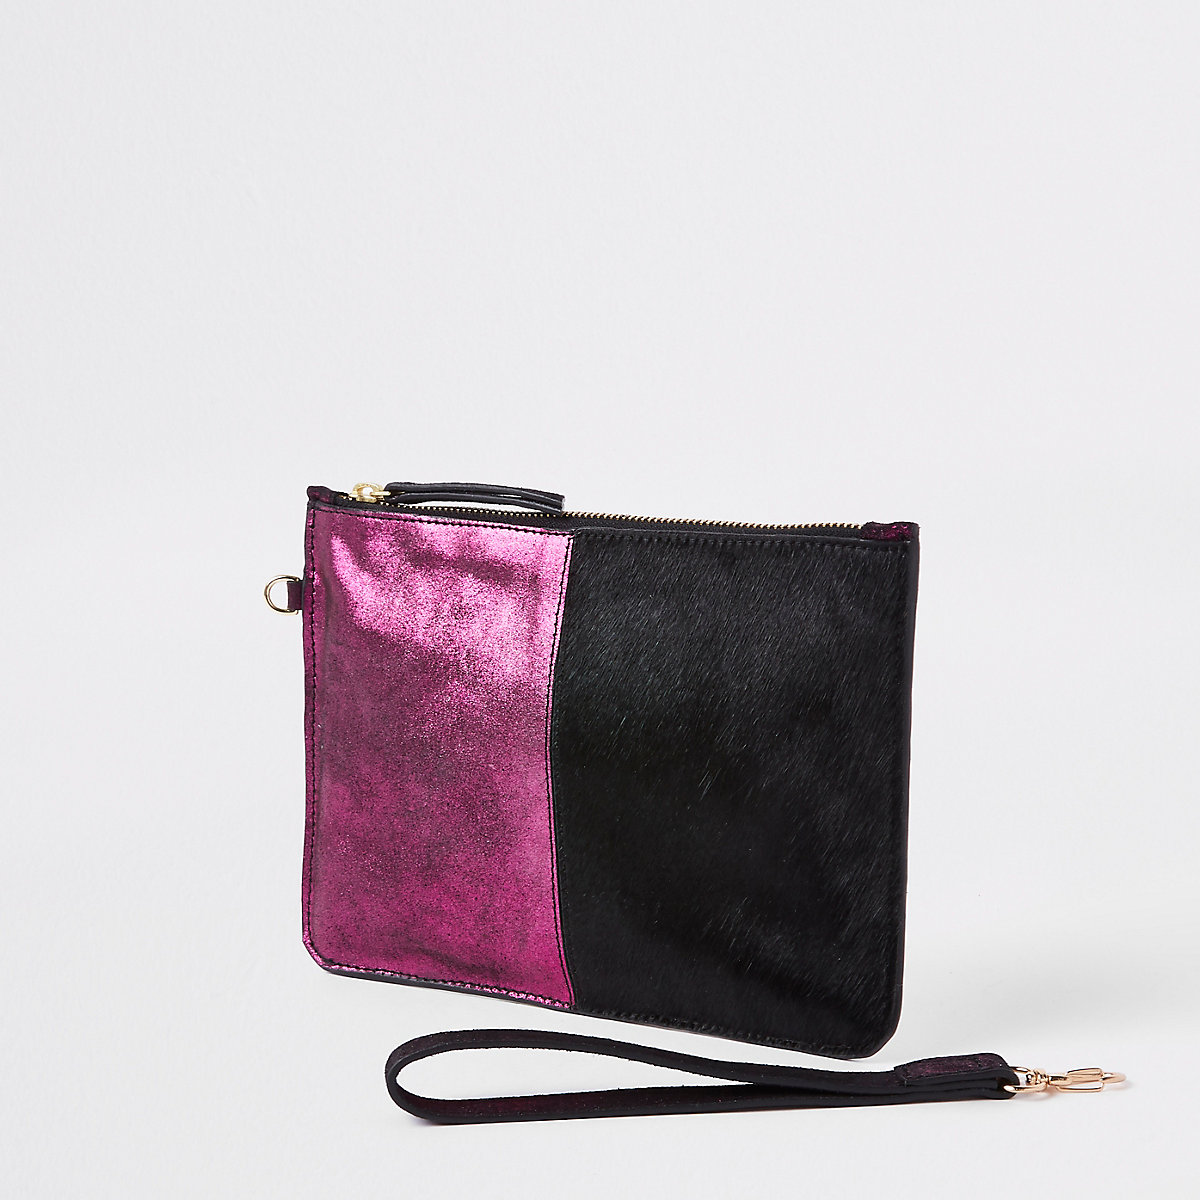 Pink leather spot pouch clutch bag